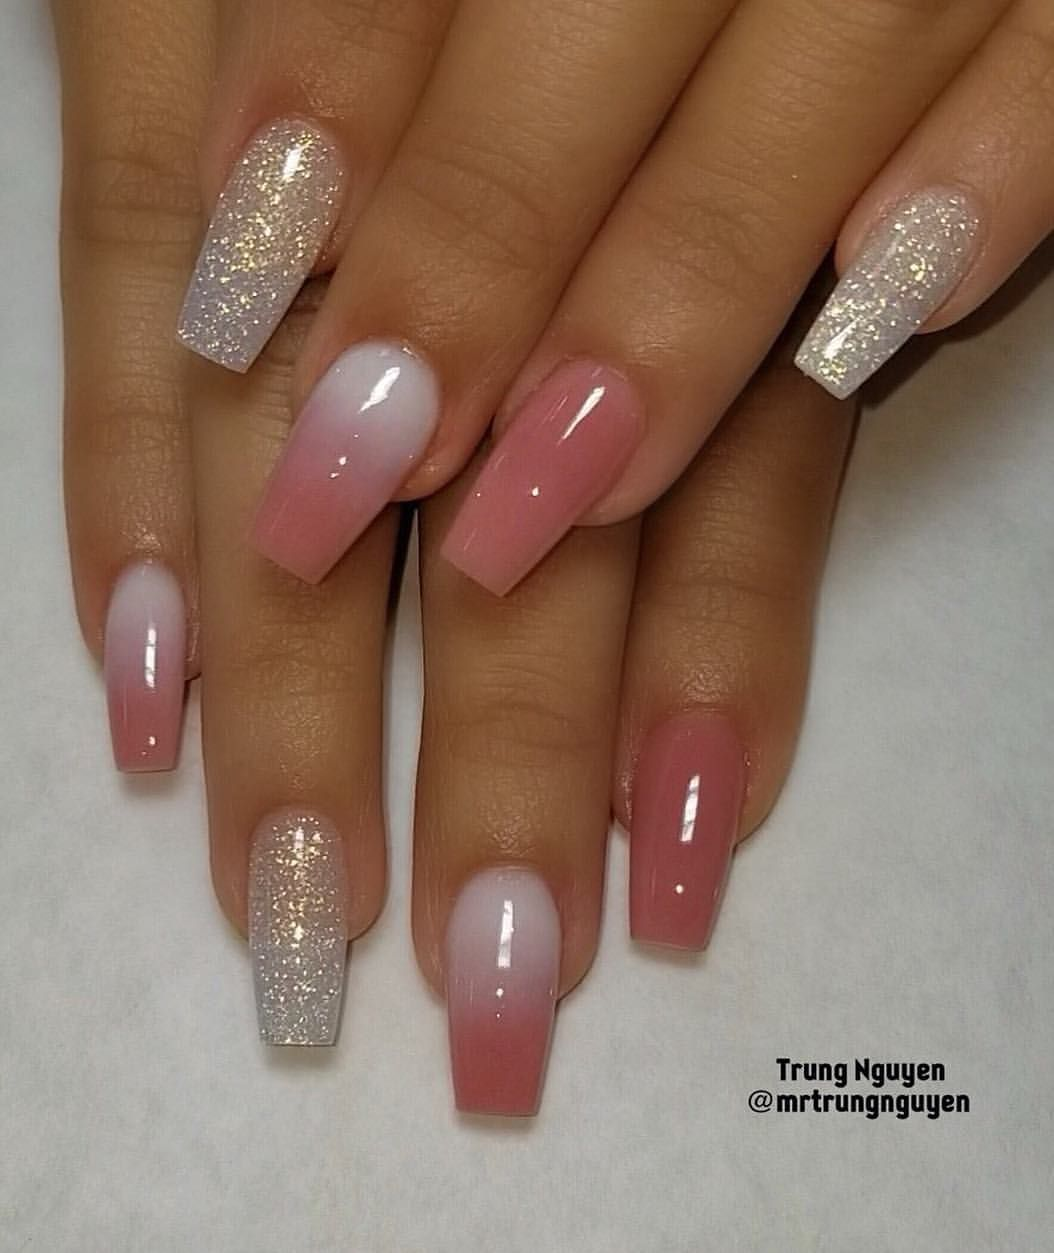 All Acrylic Nails Design Allacrylic Coloracrylic Nails Nailsonfleek Nailswag Nailfashion Fashion Fashionbl Coffin Nails Designs Nail Designs Fake Nails